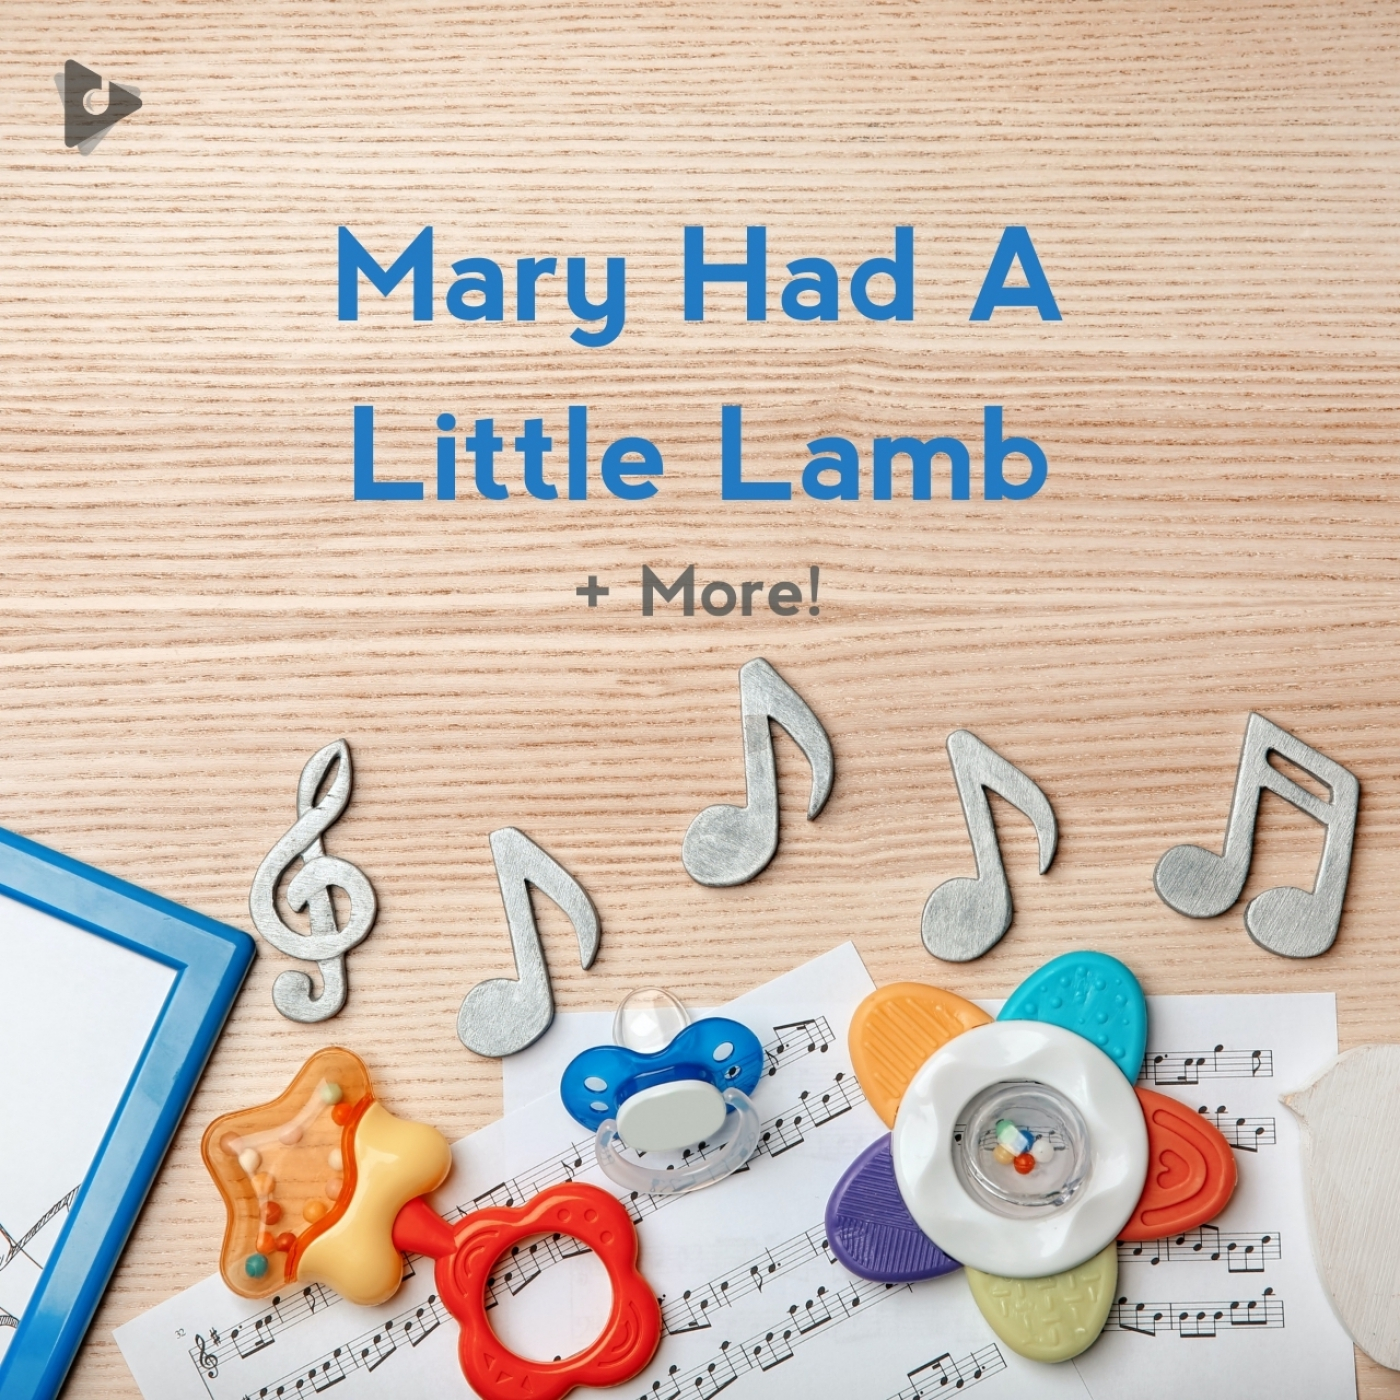 Mary Had A Little Lamb + More!